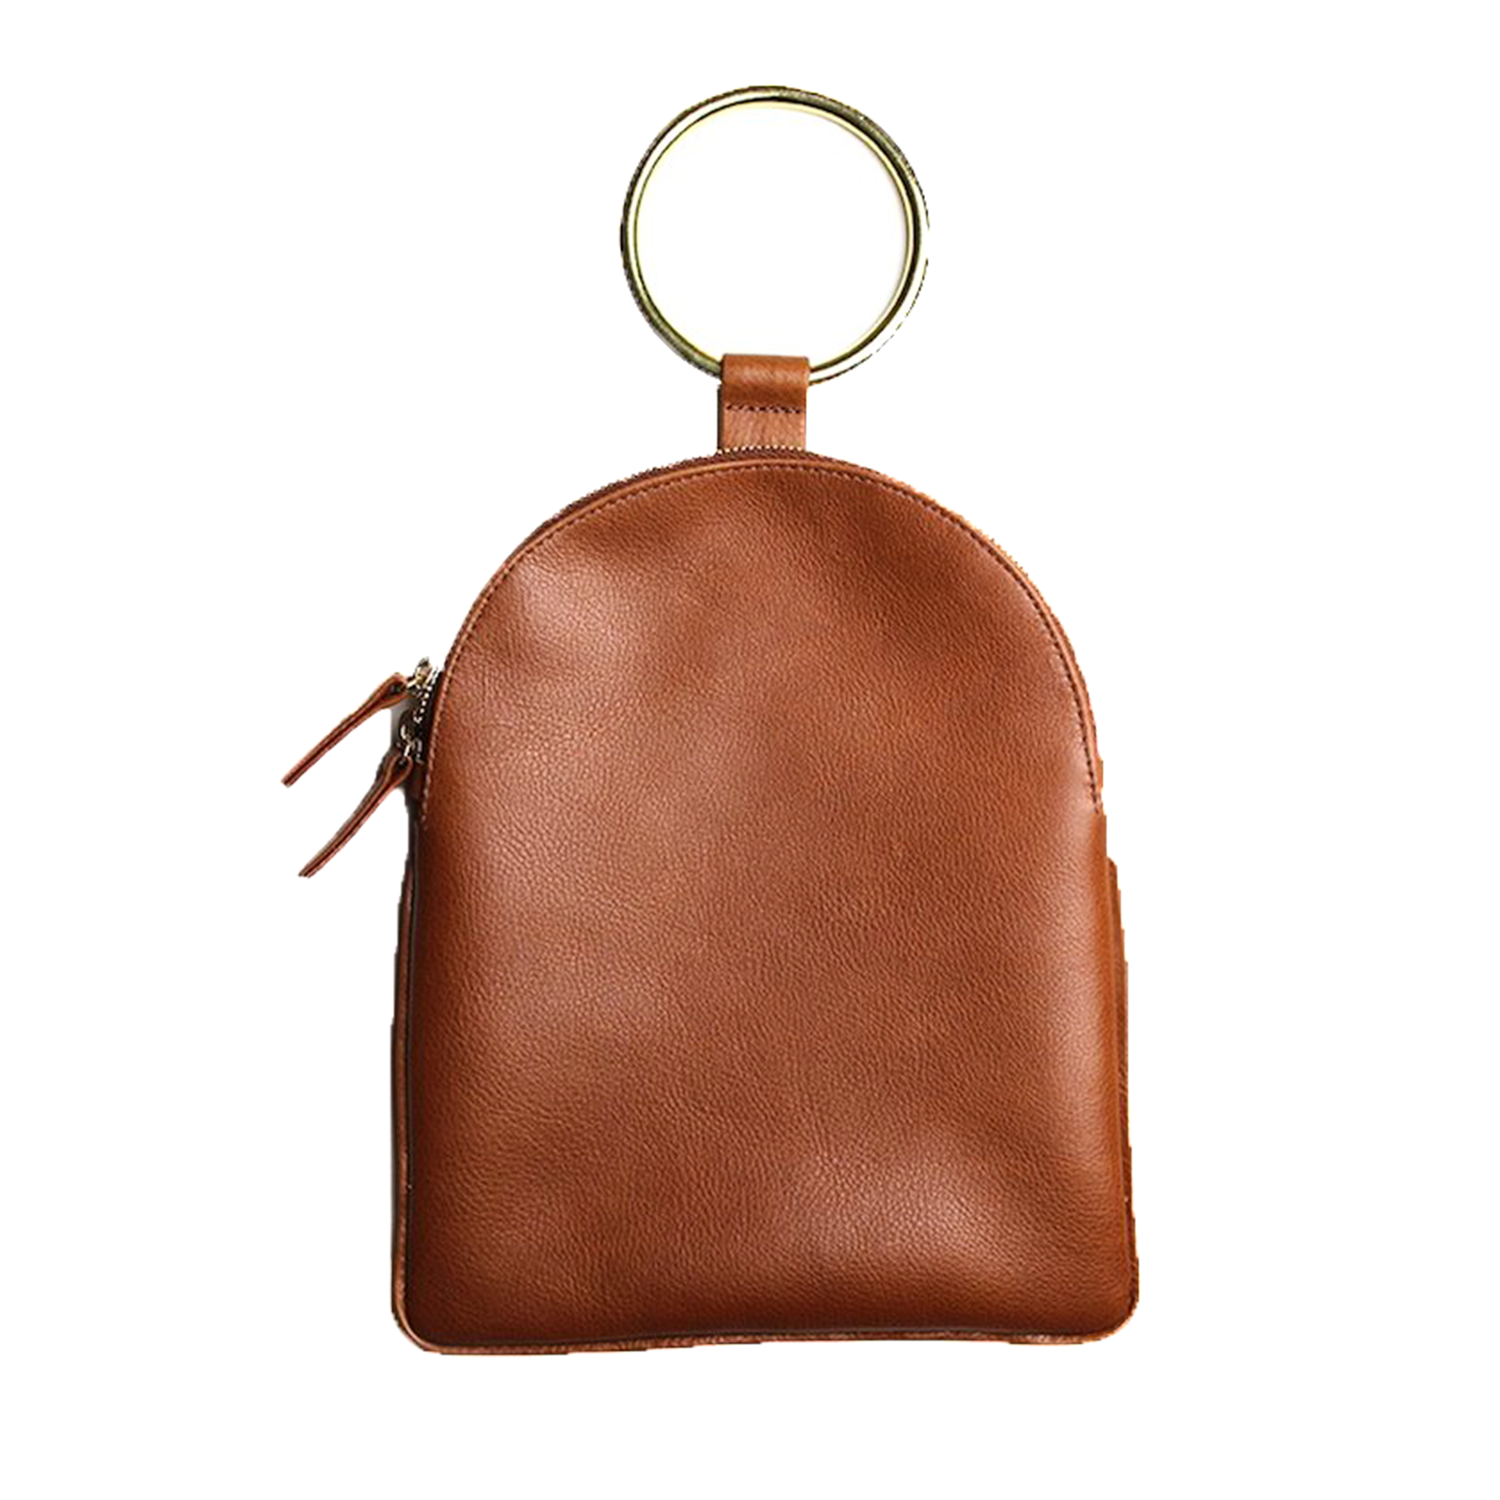 Tan Leather Ring Clutch